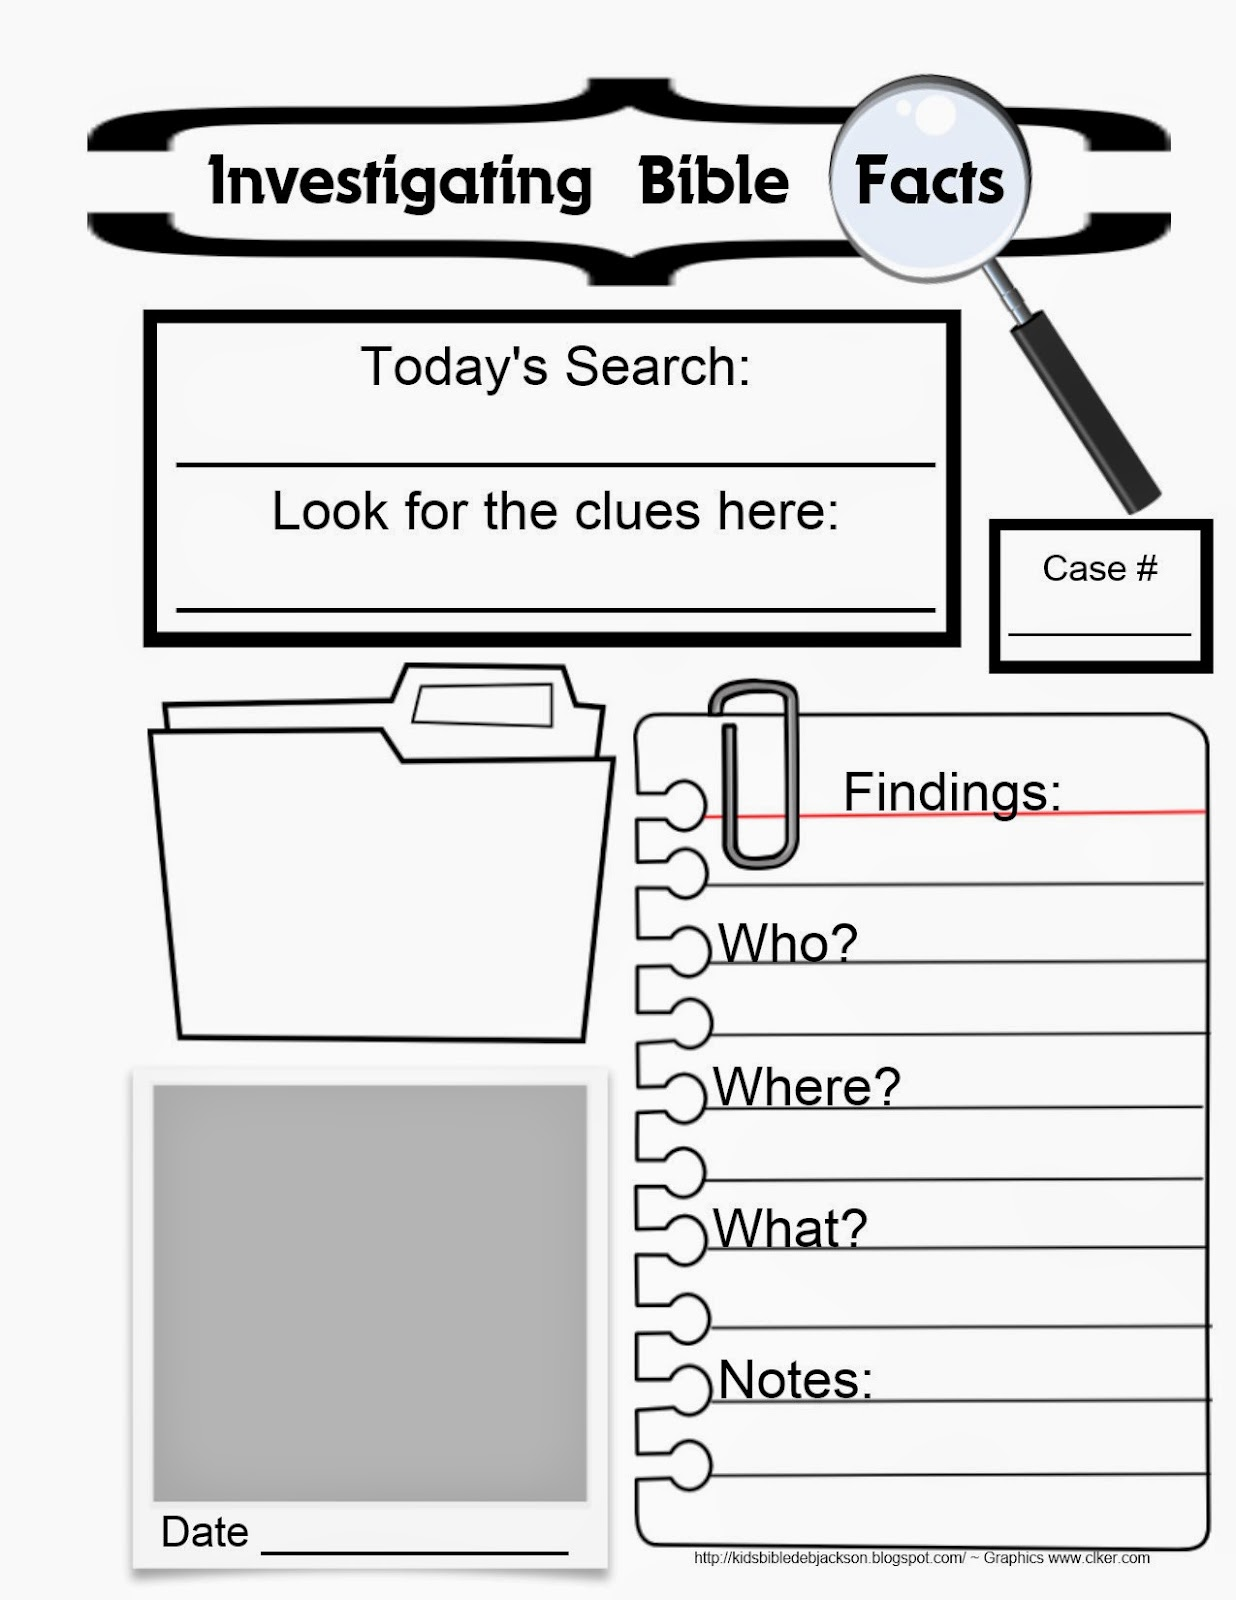 Printable Biblical Worksheets : Bible fun for kids ifa investigating facts in acts